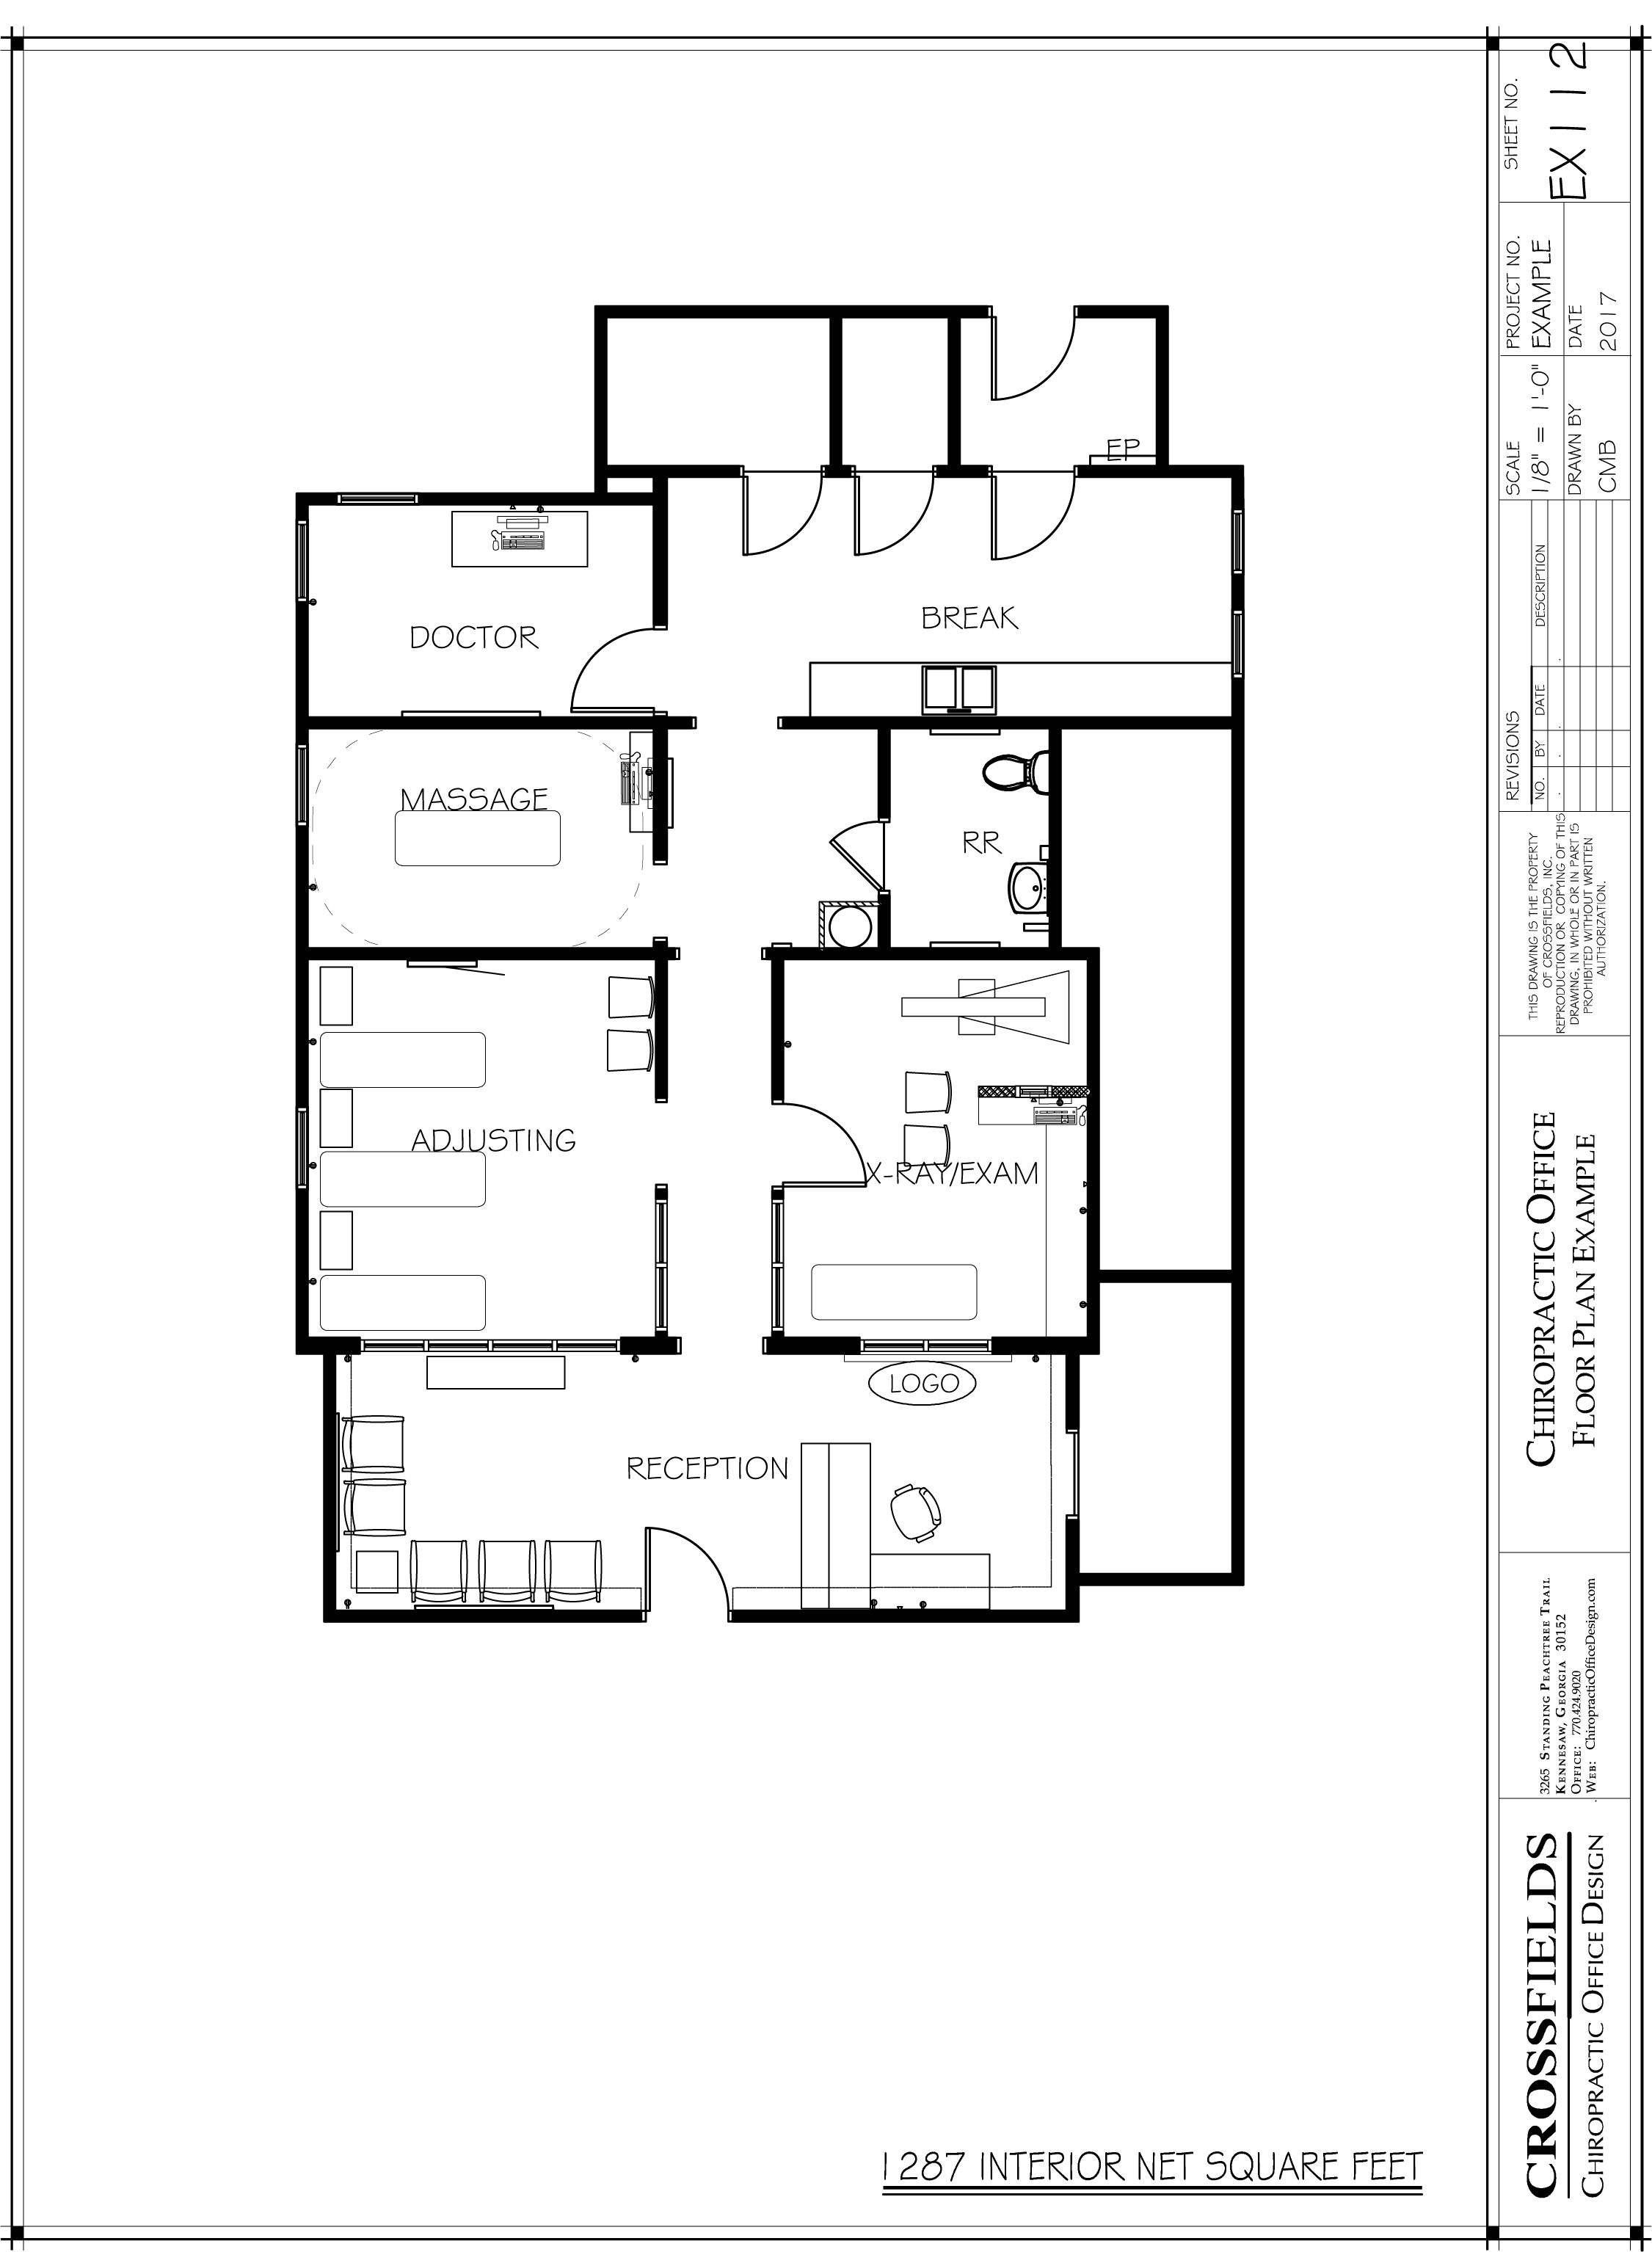 Chiropractic Office Floor Plans Versatile Medical